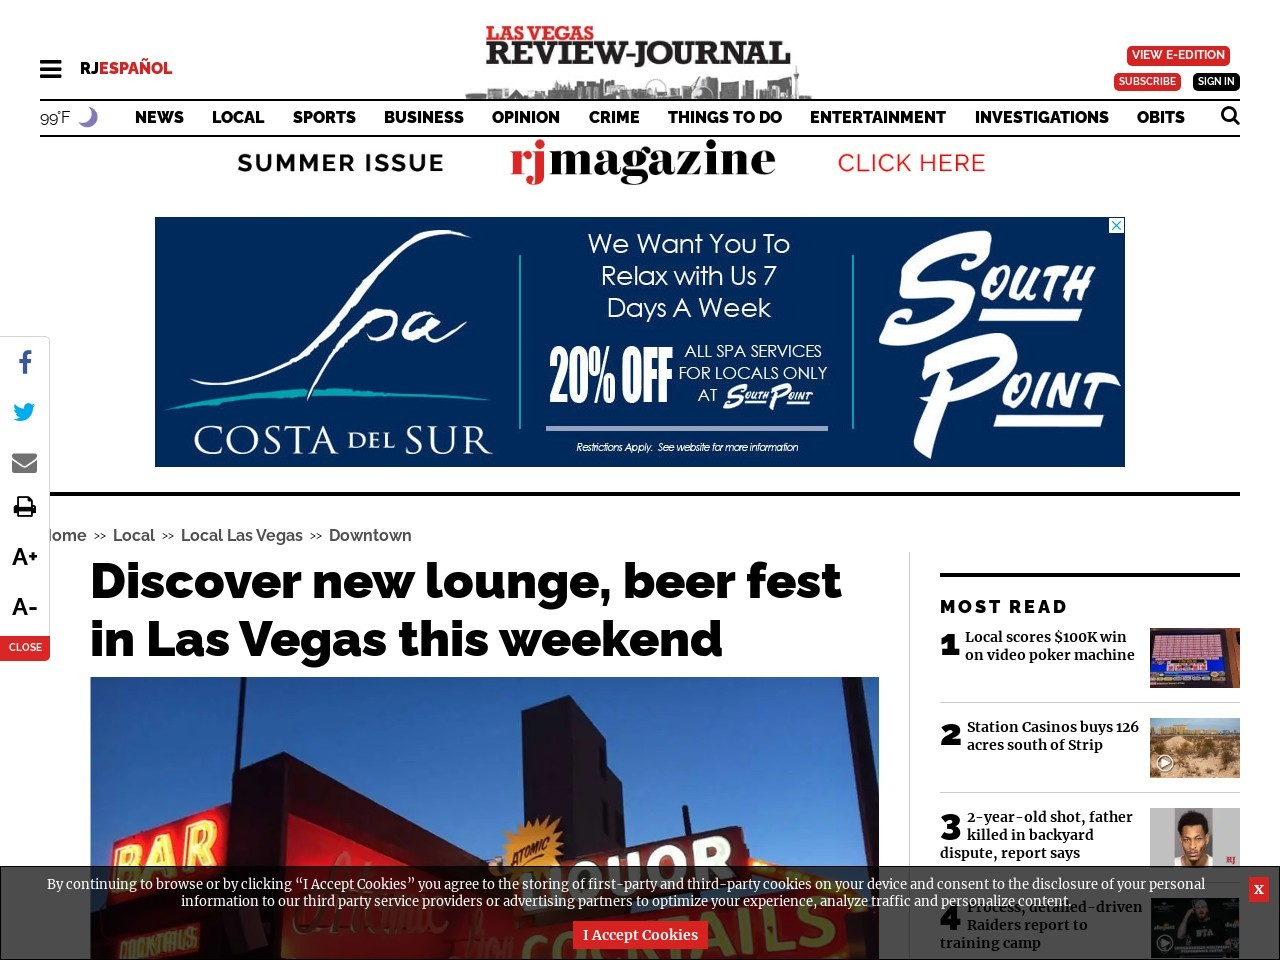 Discover new lounge, beer fest in Las Vegas this weekend